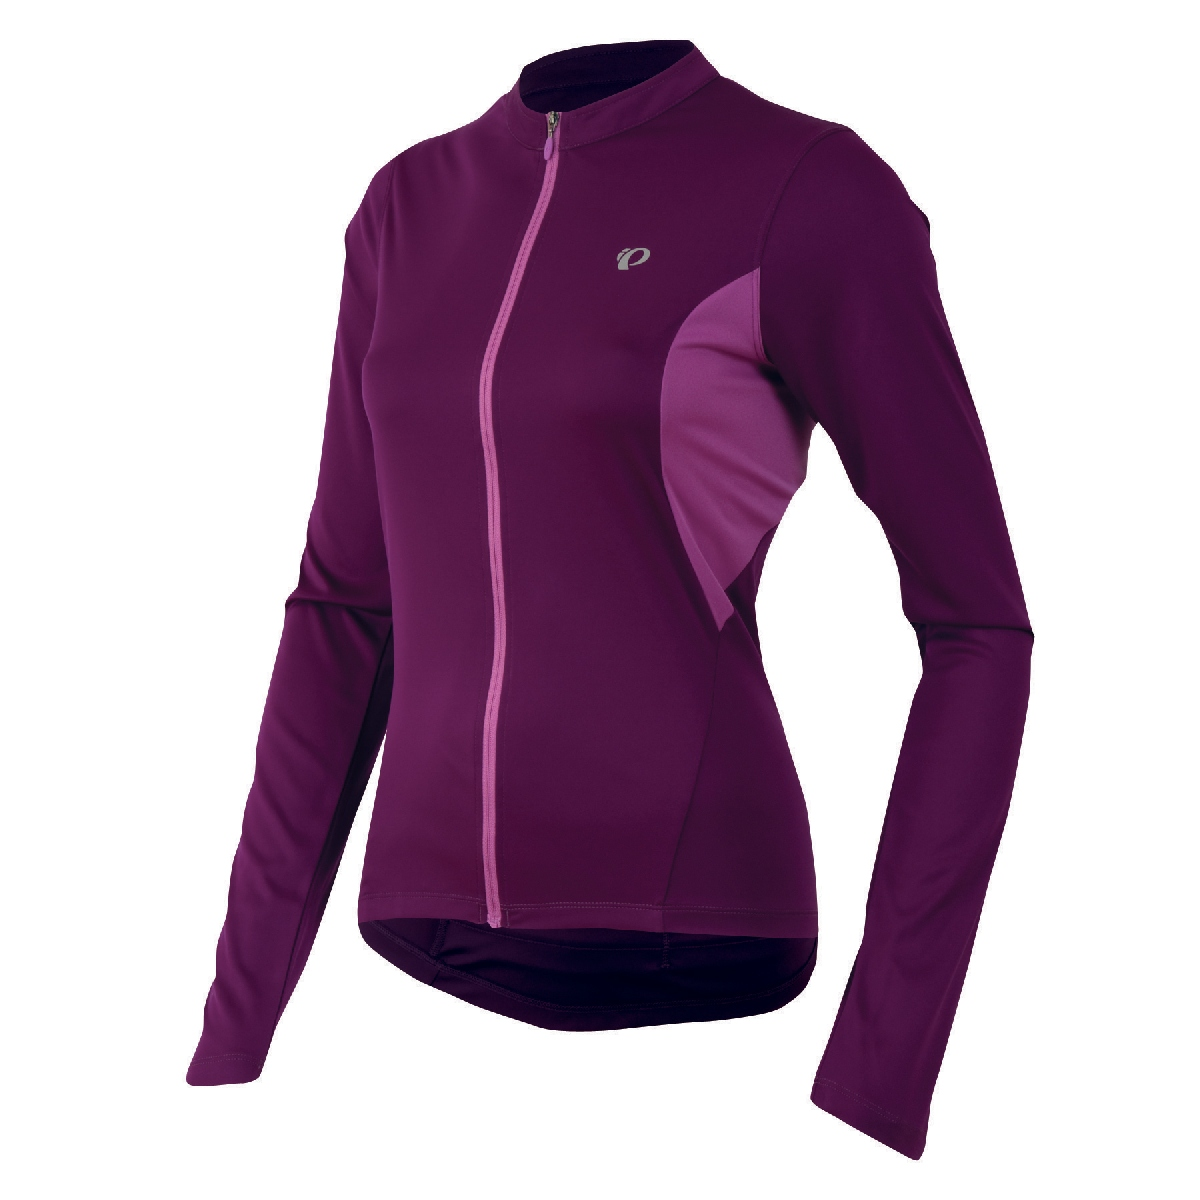 Pearl Izumi Select Long Sleeve Cycling Jersey Women's Size S DarkPurple U.S.A. & Canada